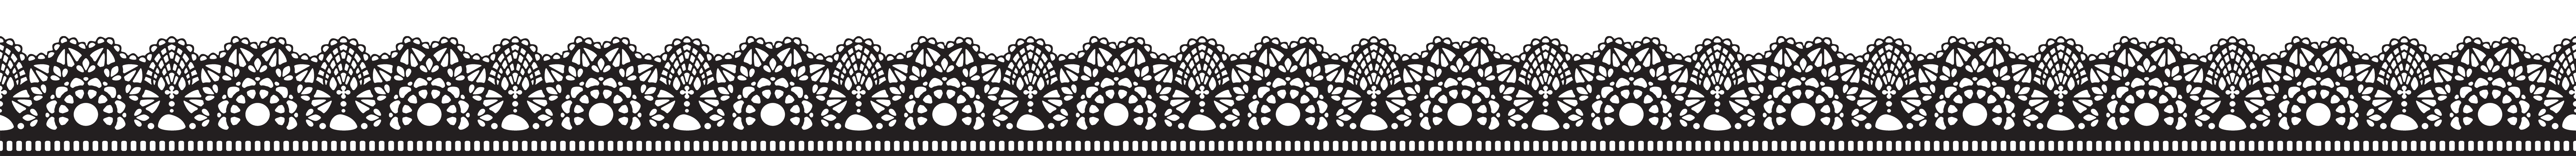 382 Lace Border free clipart.